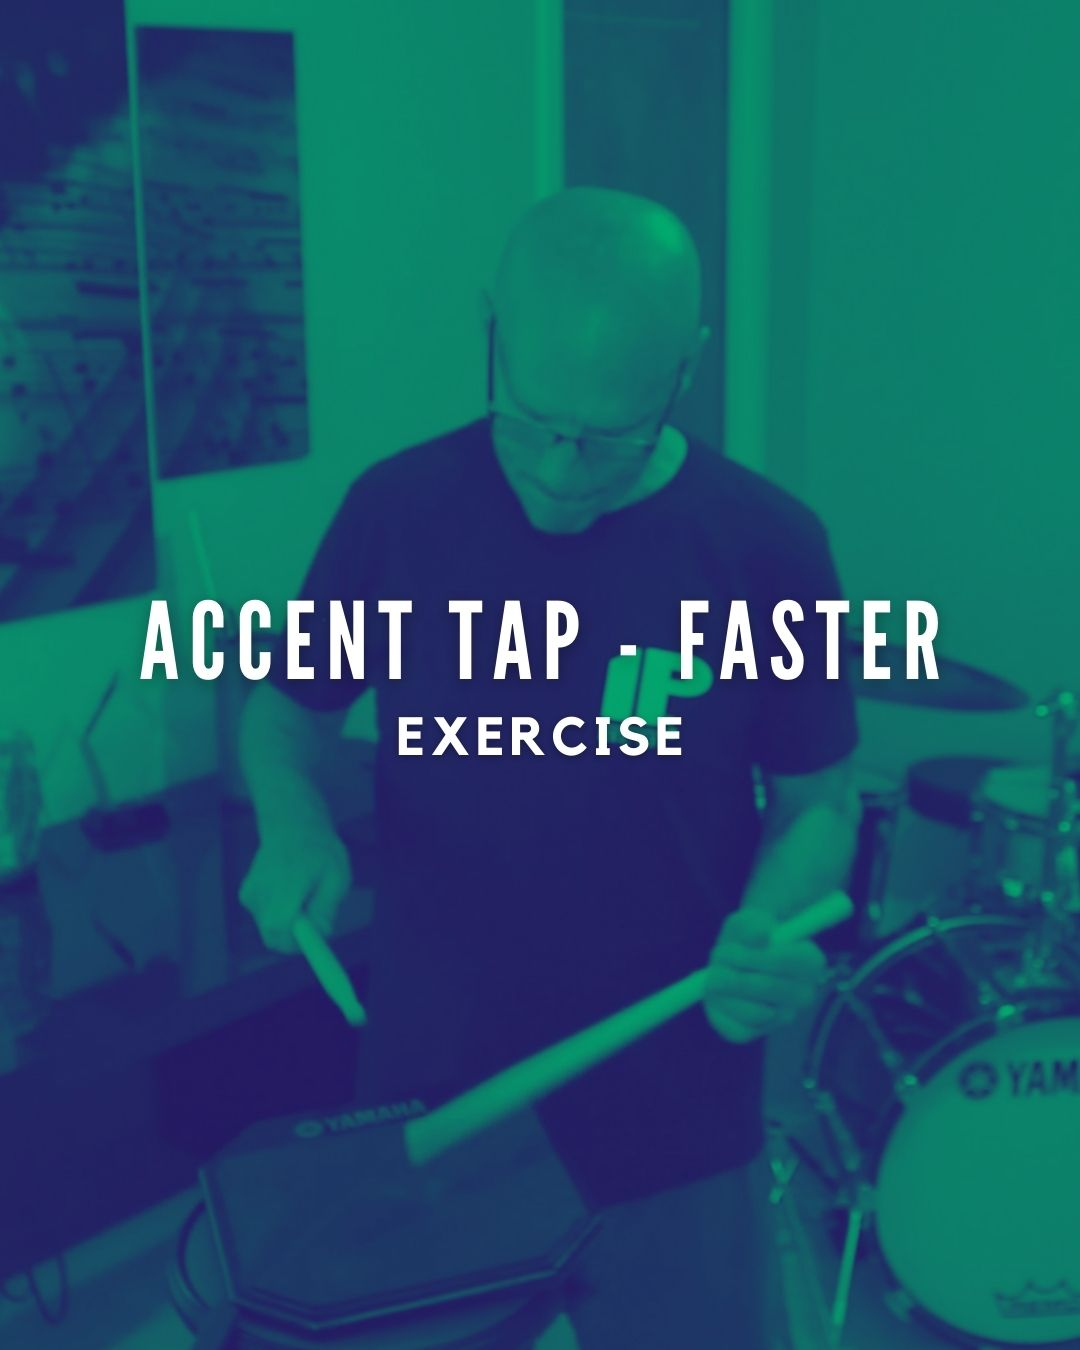 Accent Tap - Faster